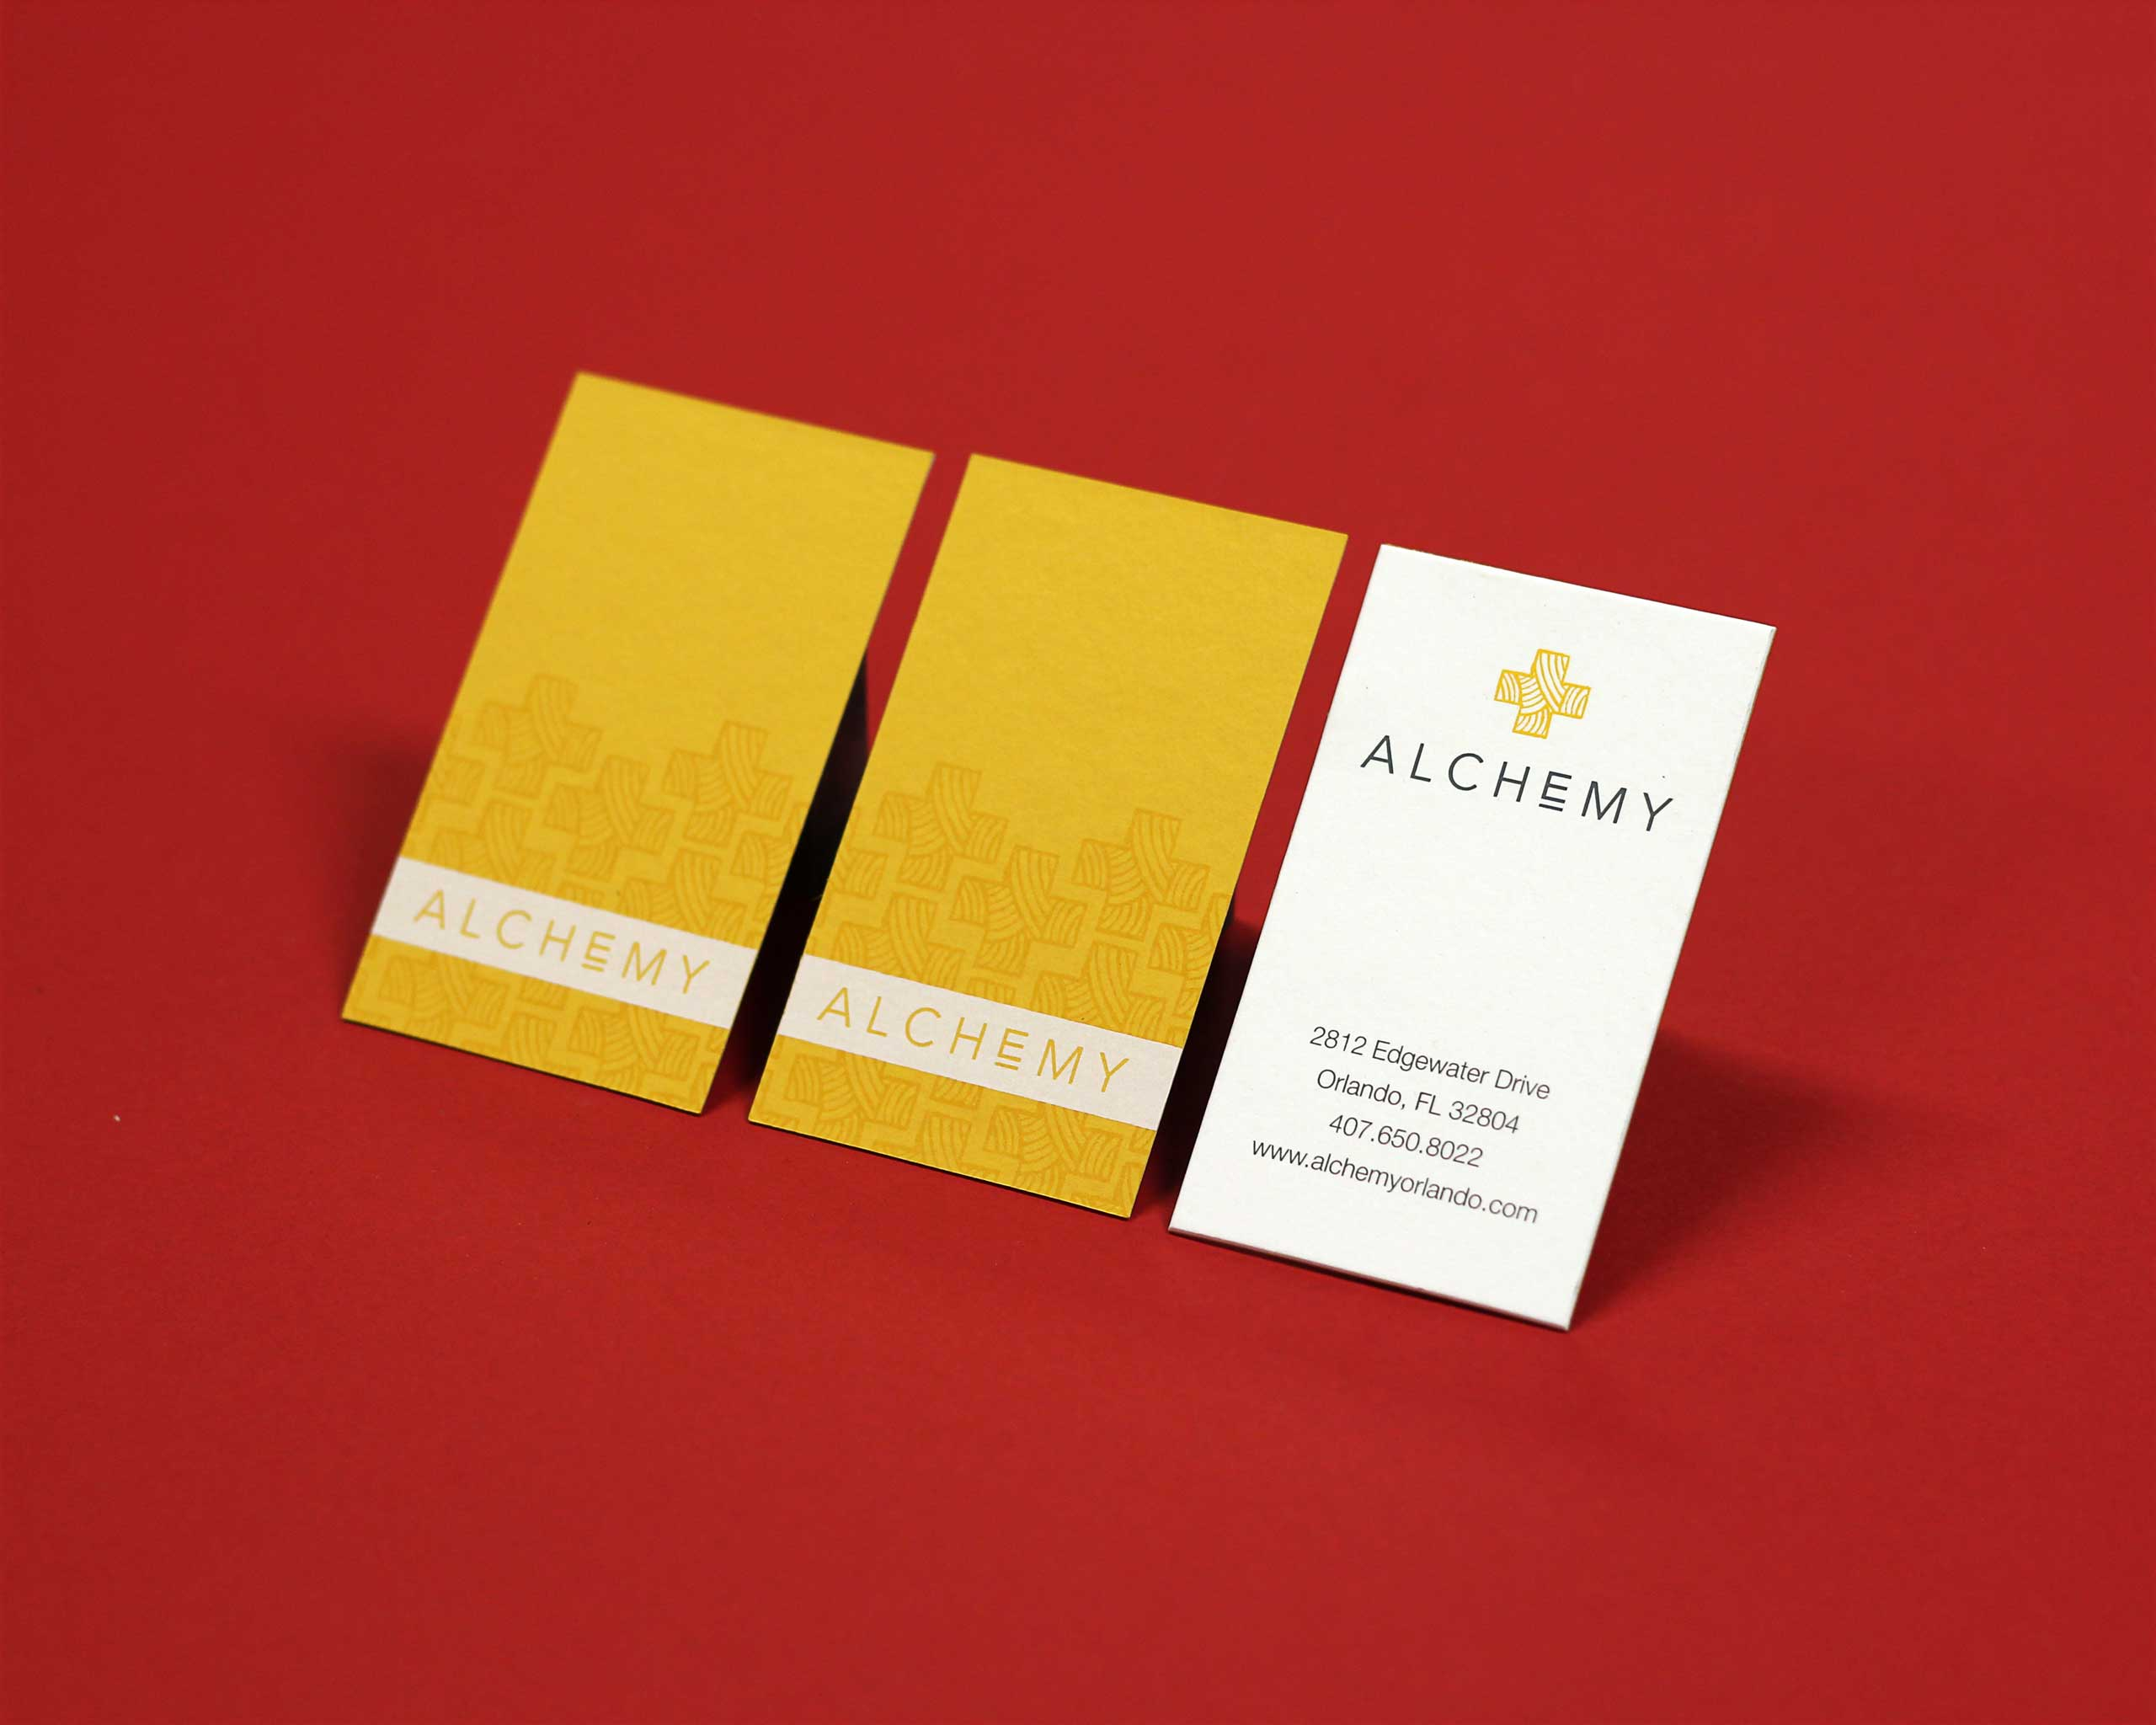 Alchemy screen printed business cards